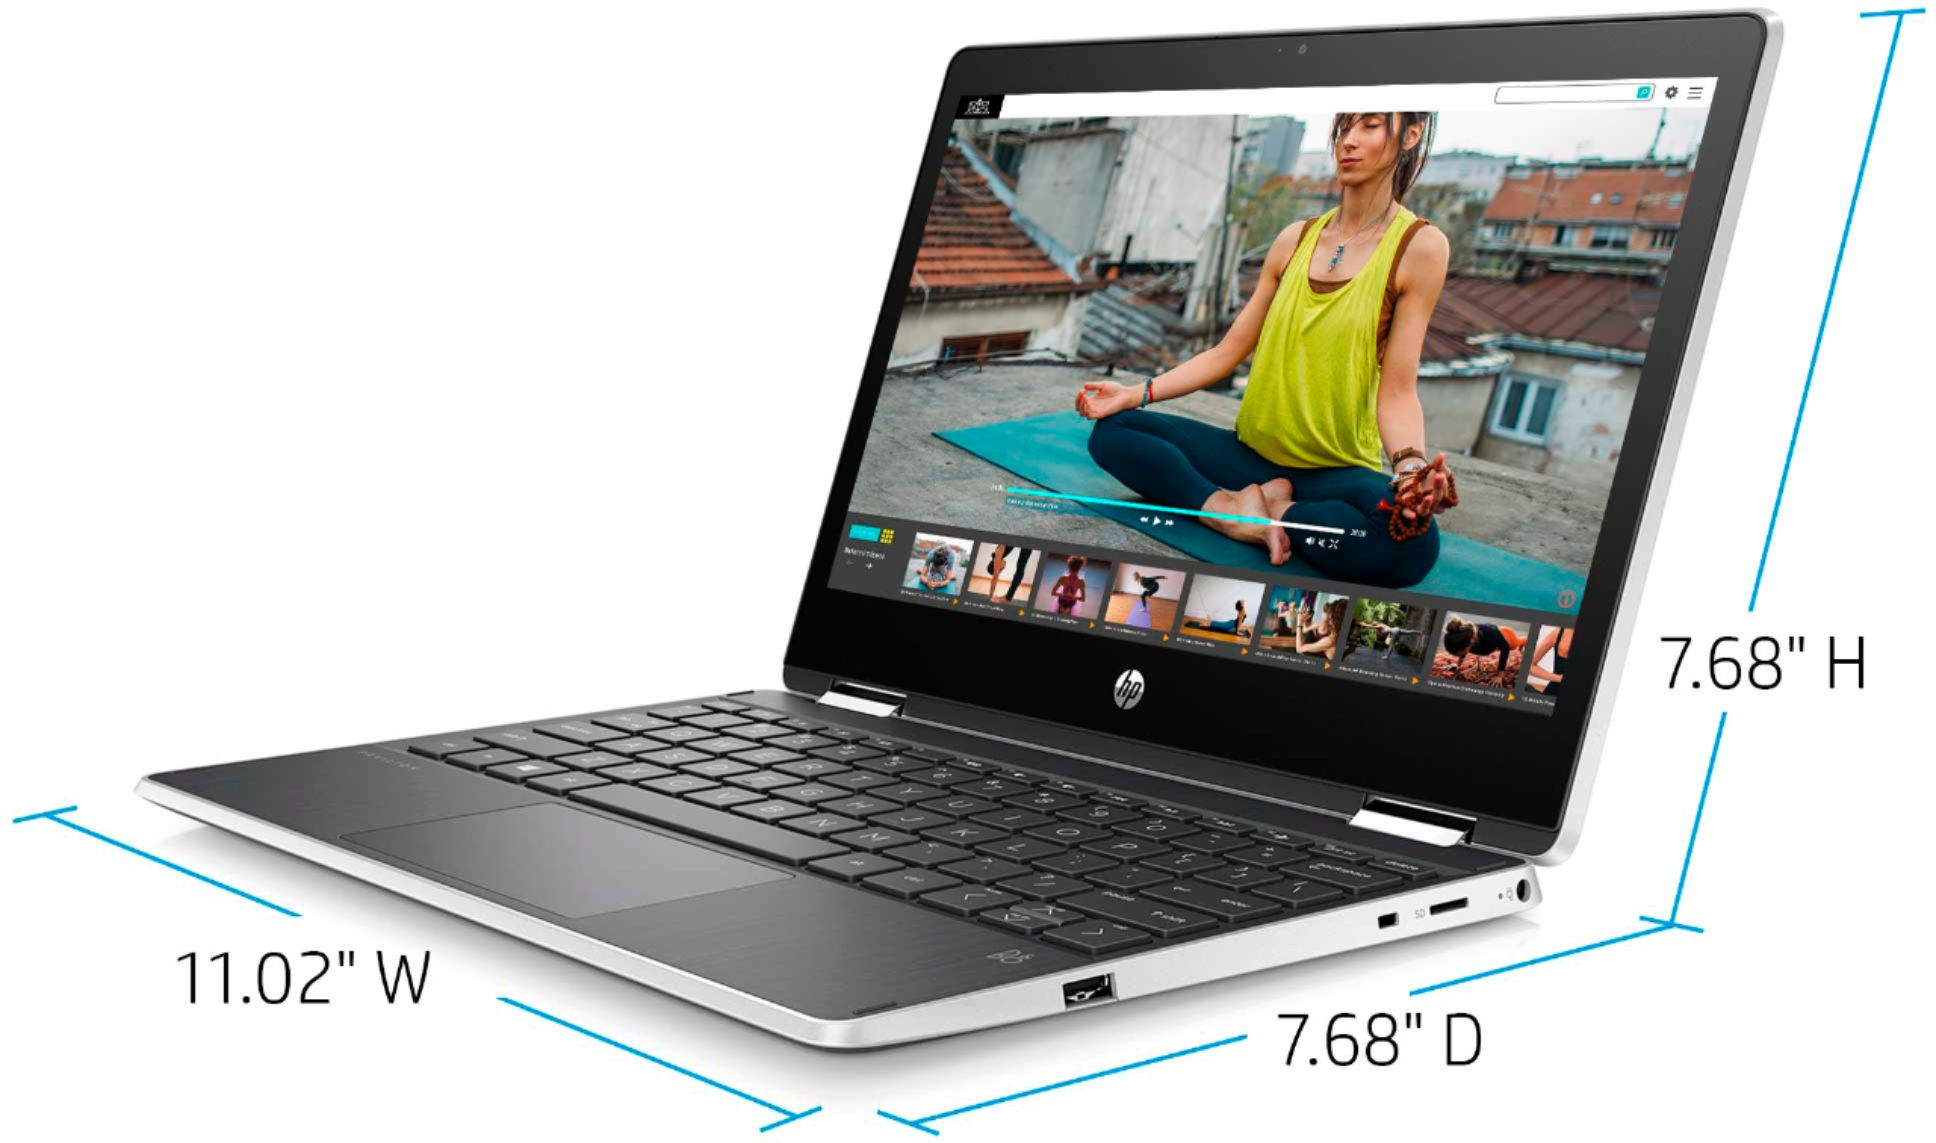 """Left Zoom. HP - Geek Squad Certified Refurbished Pavilion x360 11.6"""" Laptop - Intel Pentium - 4GB Memory - 128GB Solid State Drive - Ash Silver."""